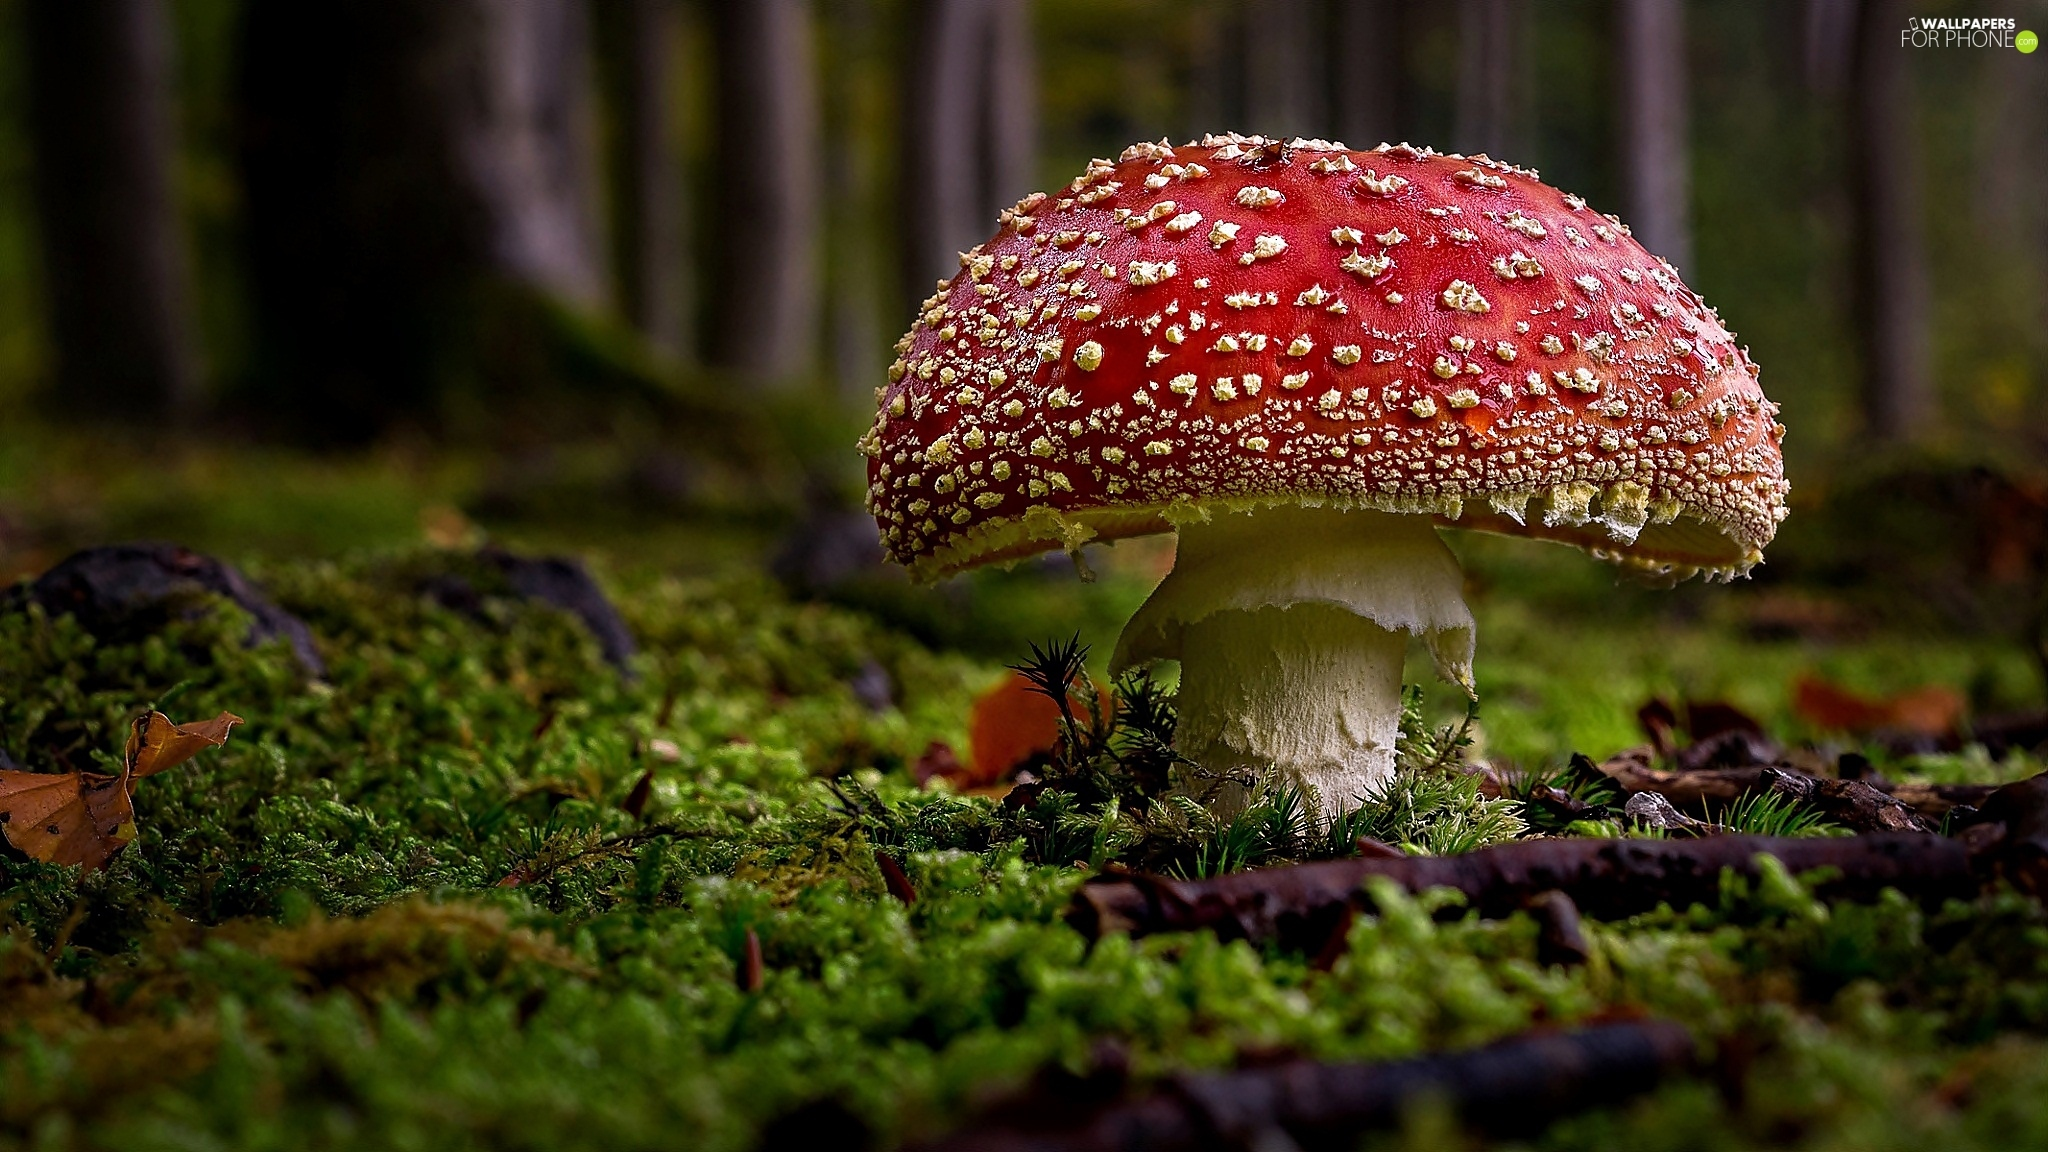 Mushrooms, litter, forest, toadstool